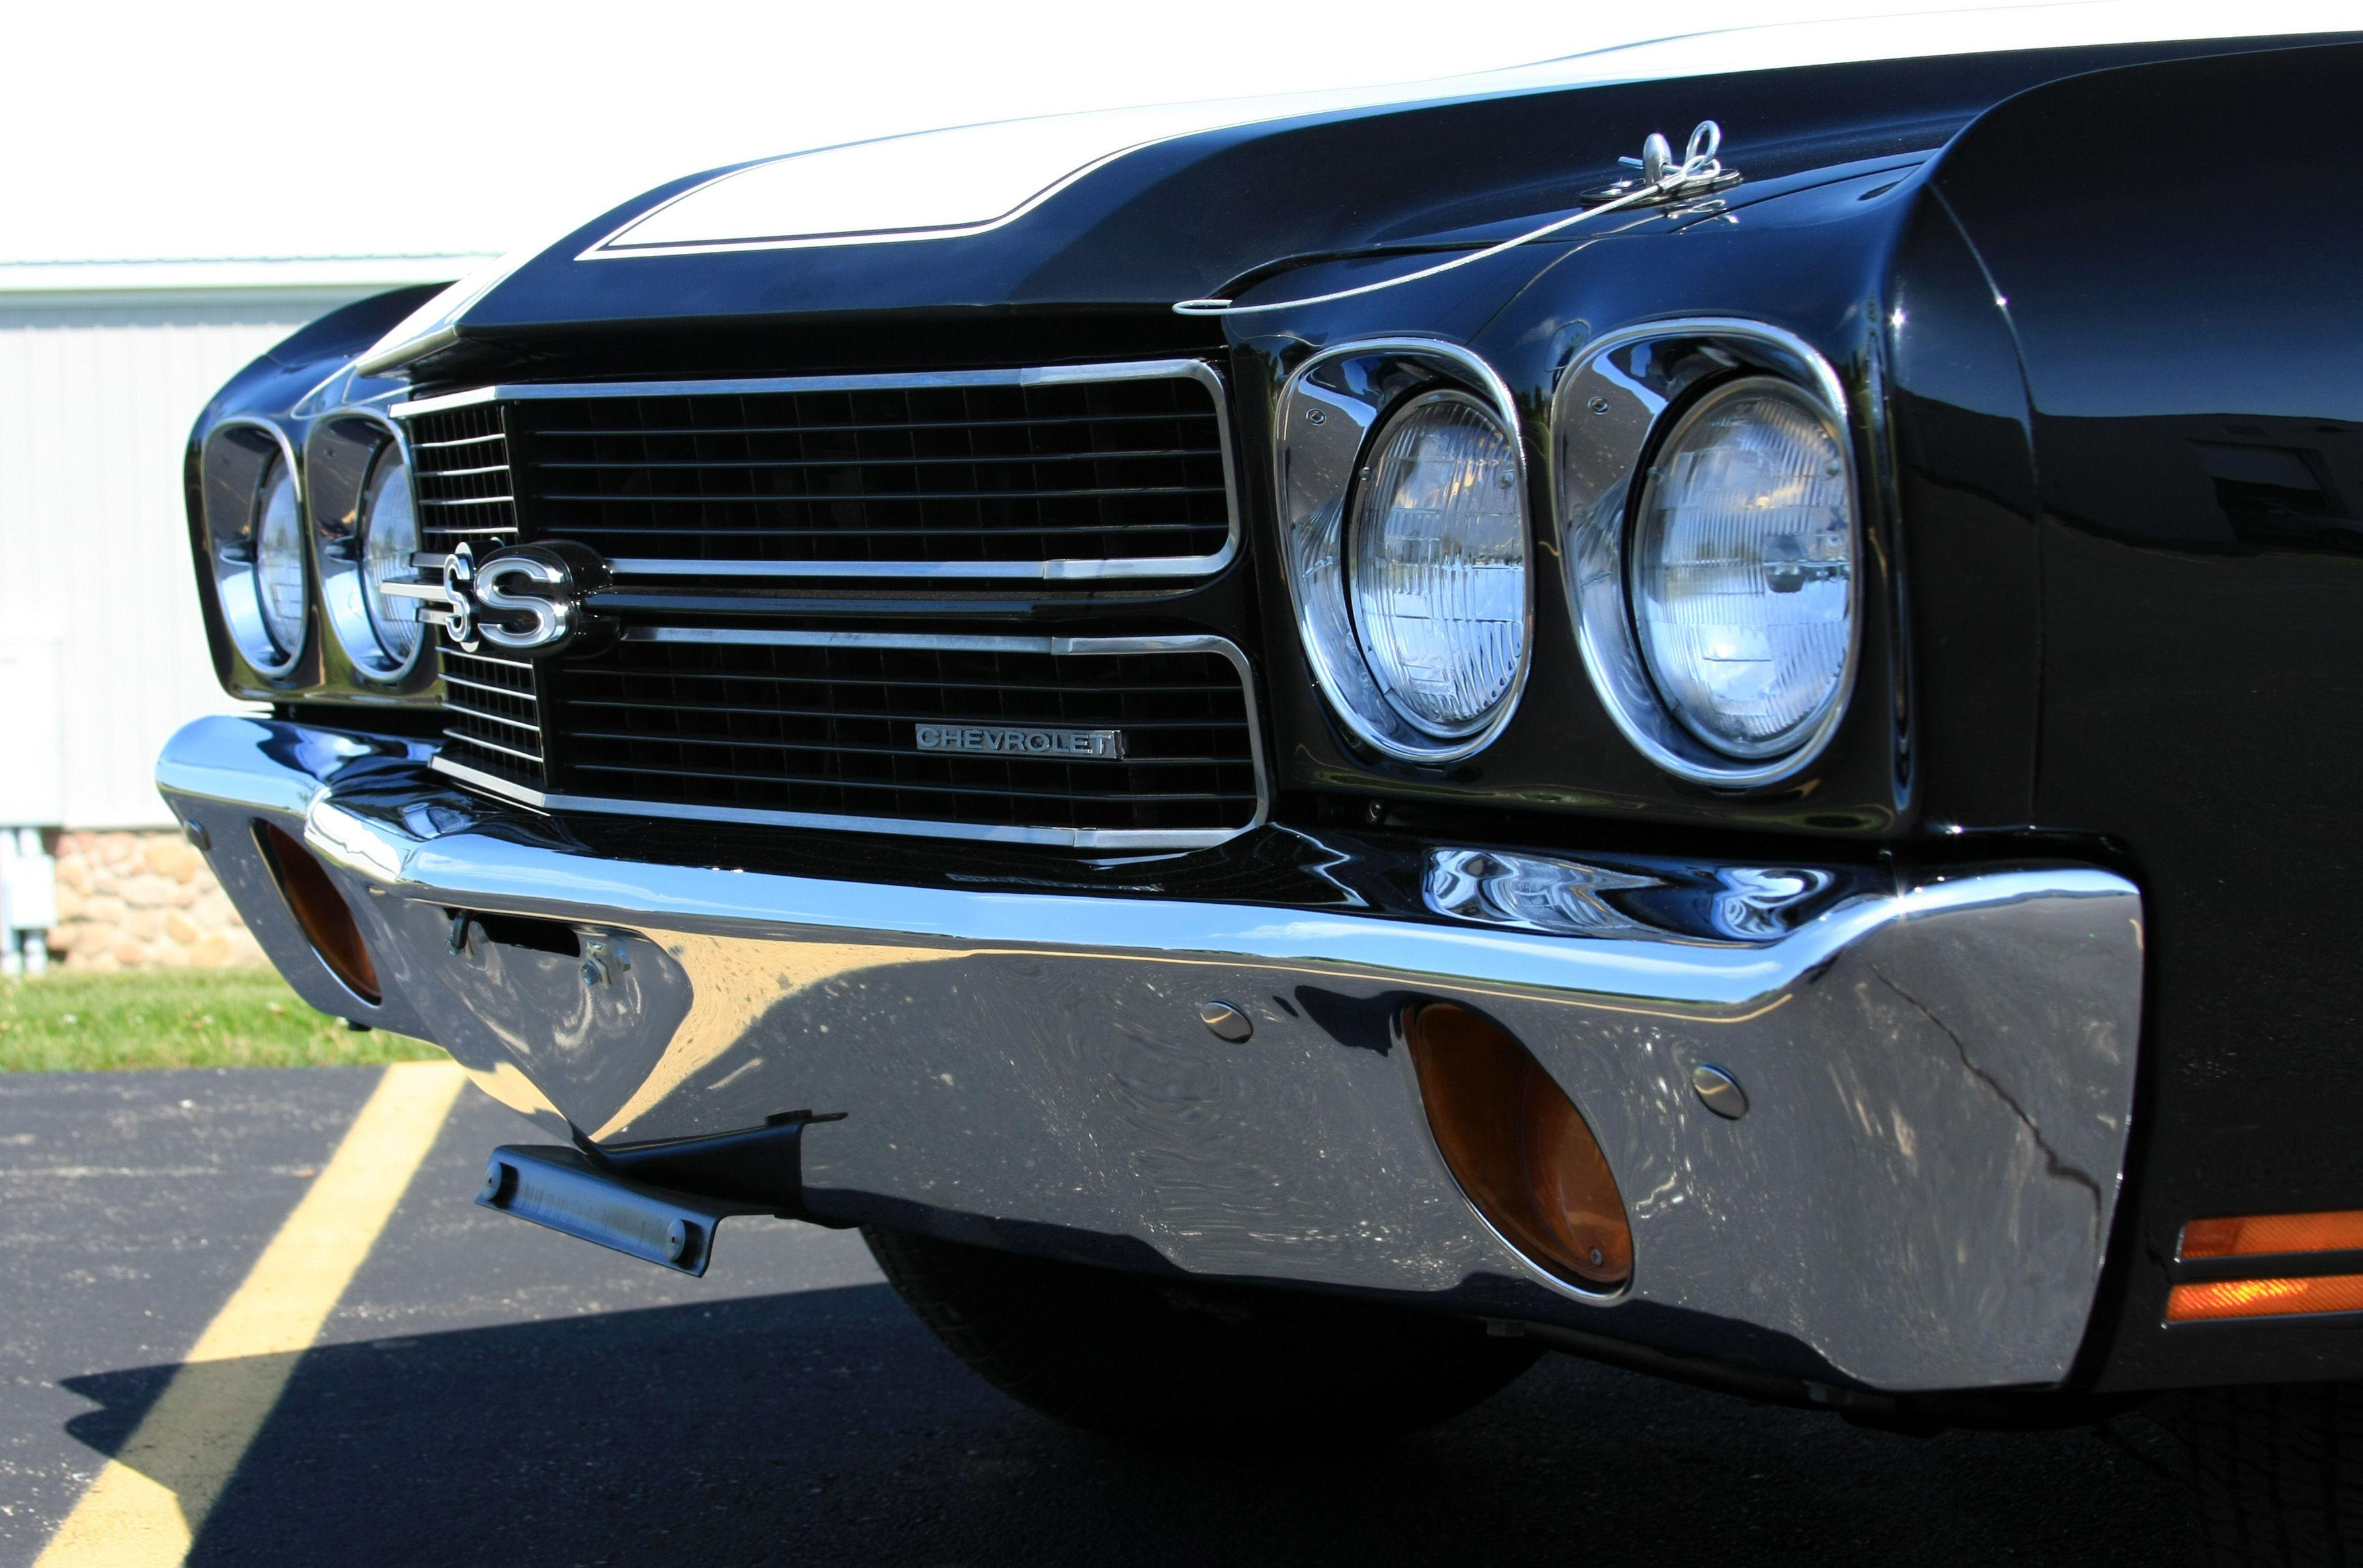 1970 EL CAMINO SS Full HD Wallpapers and Backgrounds Image